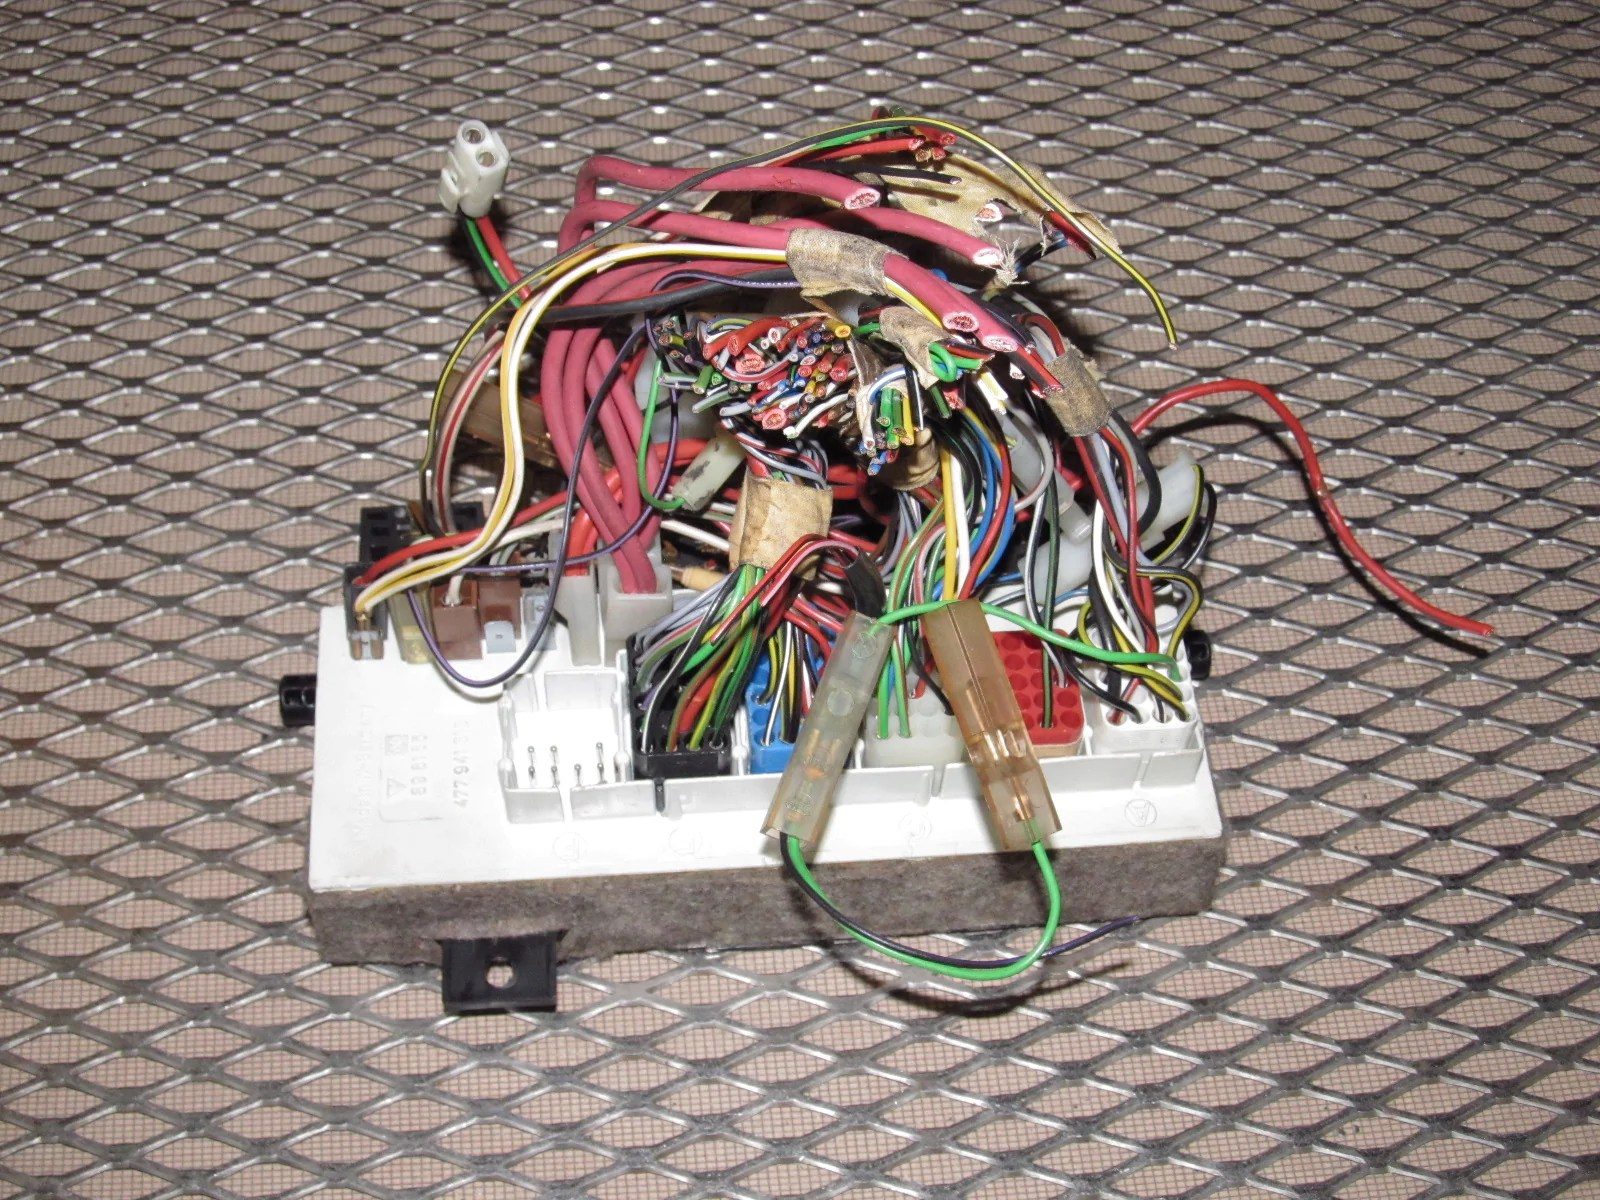 84 porsche 944 fuse box wiring diagrams rh 28 shareplm de porsche 944 driving light porsche [ 1600 x 1200 Pixel ]